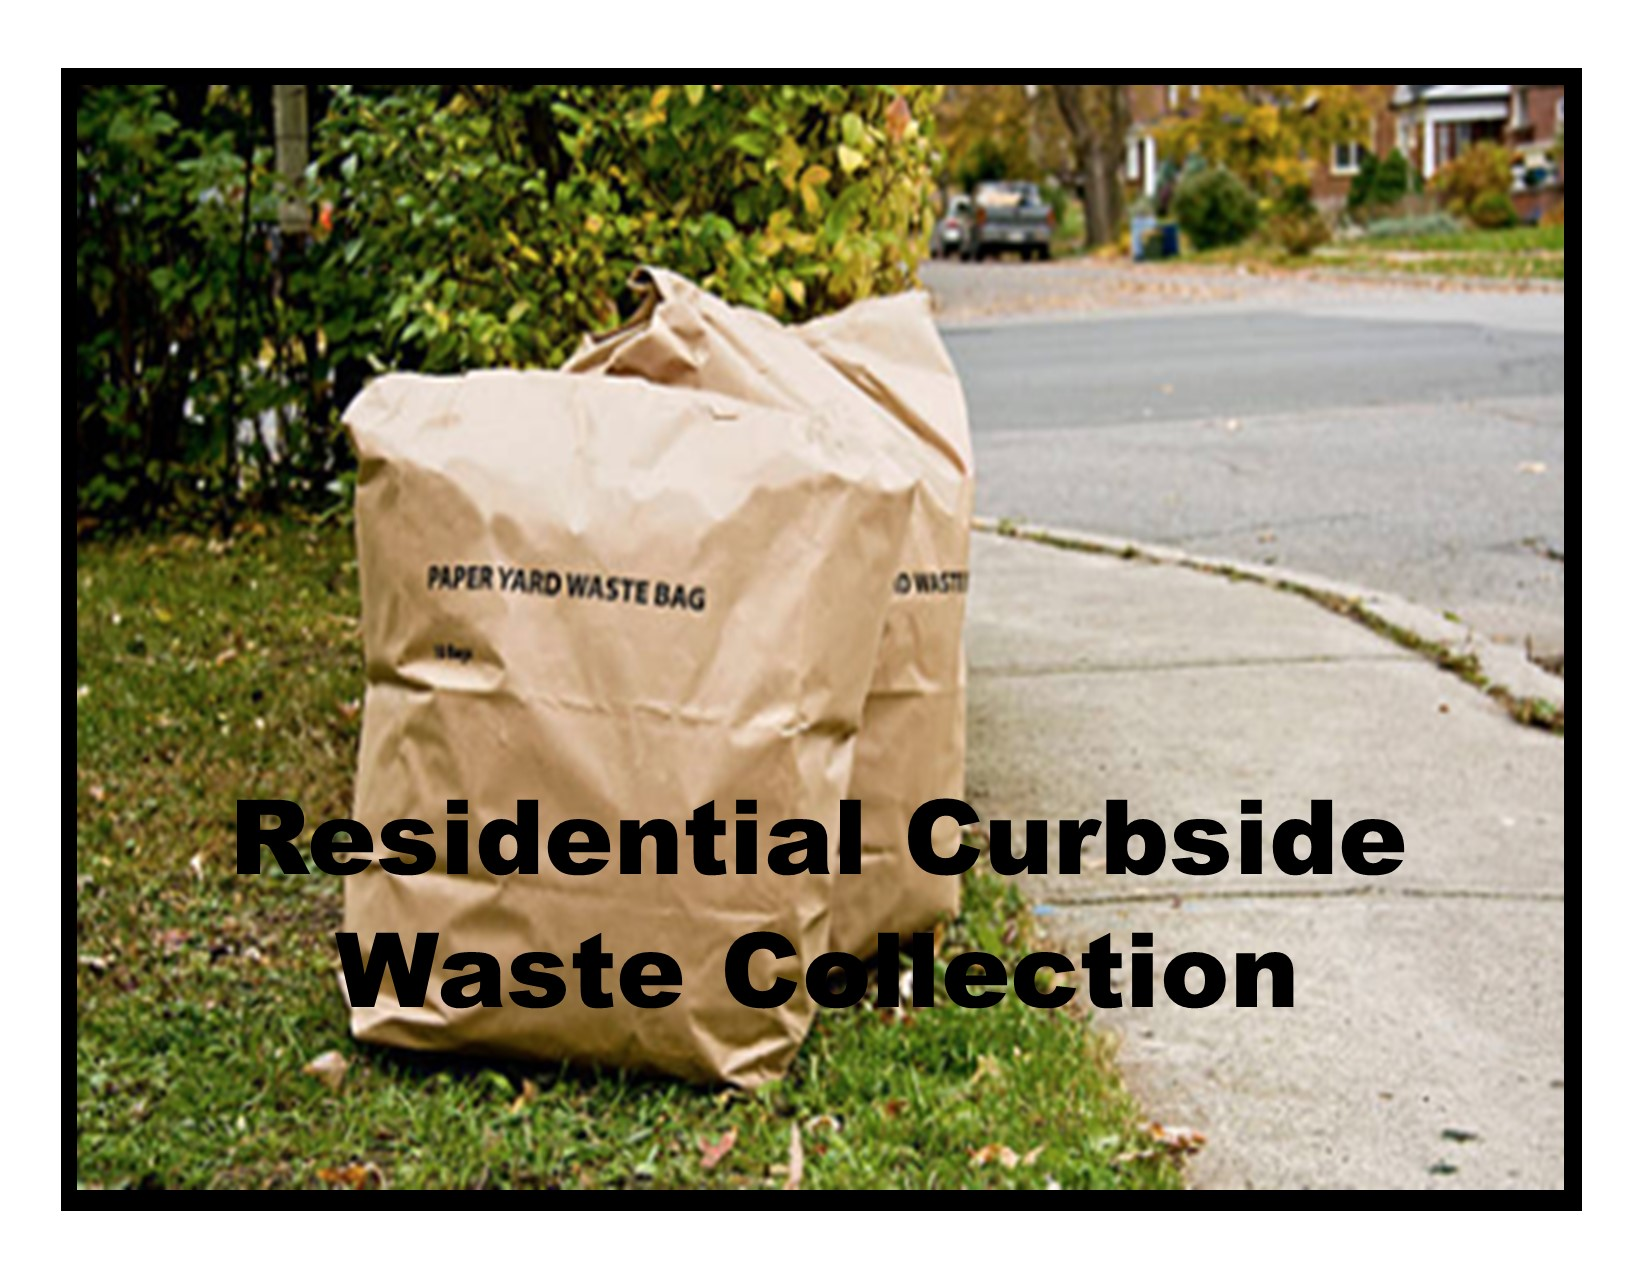 Residential Curbside Waste Collection